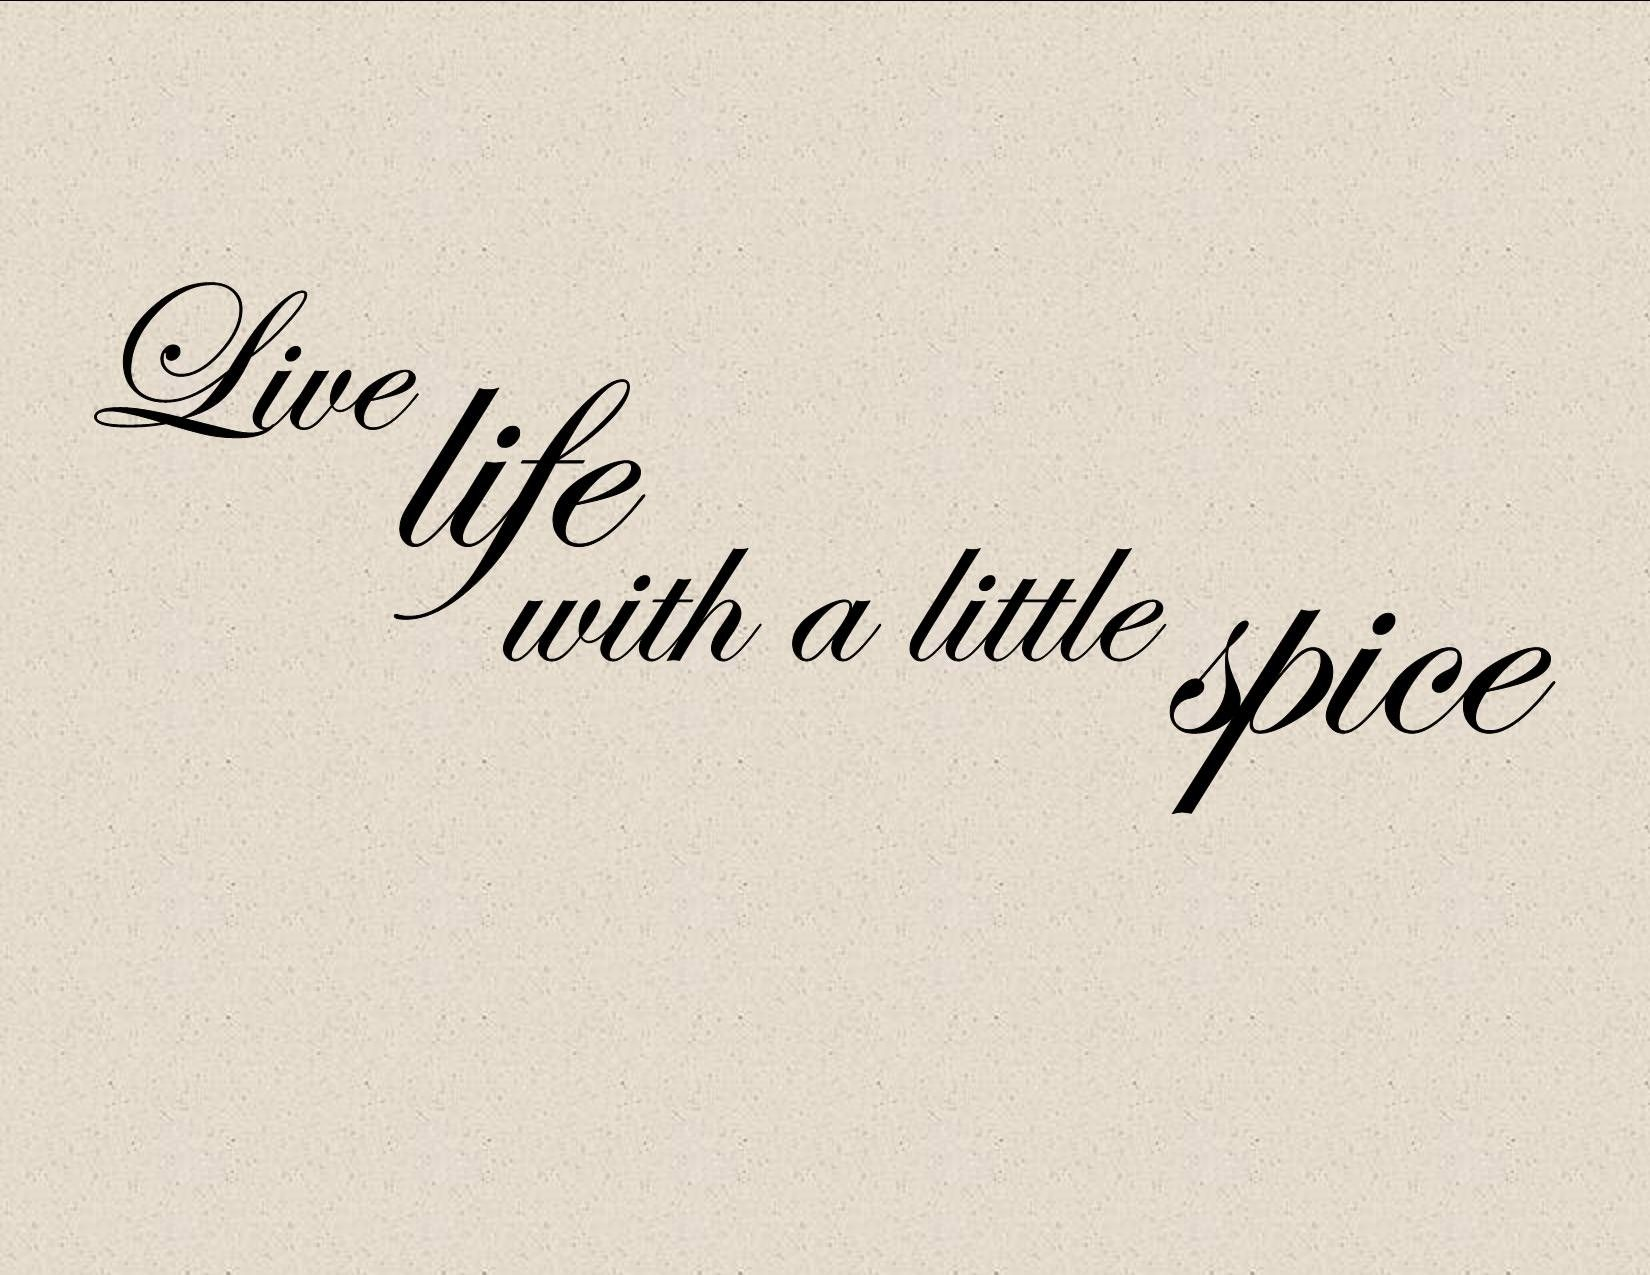 Wall art kitchen quotes - Live Life With A Little Spice Vinyl Wall Lettering Cooking Kitchen Quotes And Sayings Home Art